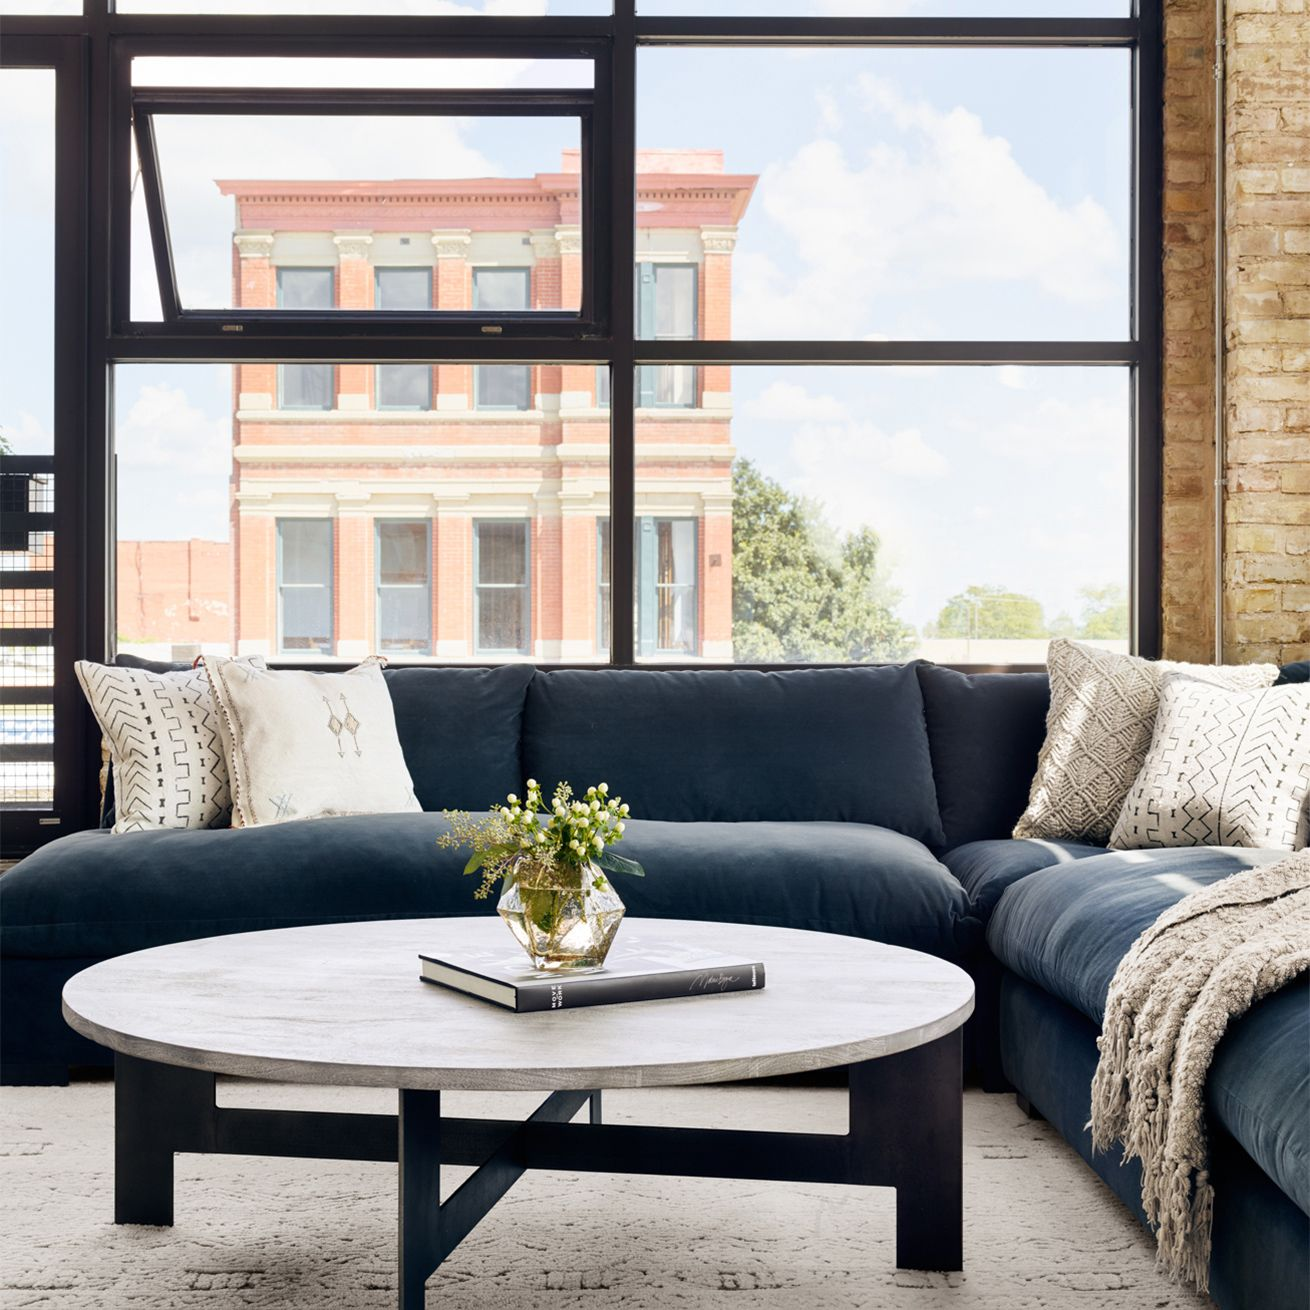 Ingo Industrial Loft Grey Wood Iron Round Round Coffee Table Sectional Sofa Trendy Living Rooms Corner Sectional Sofa [ 1310 x 1310 Pixel ]